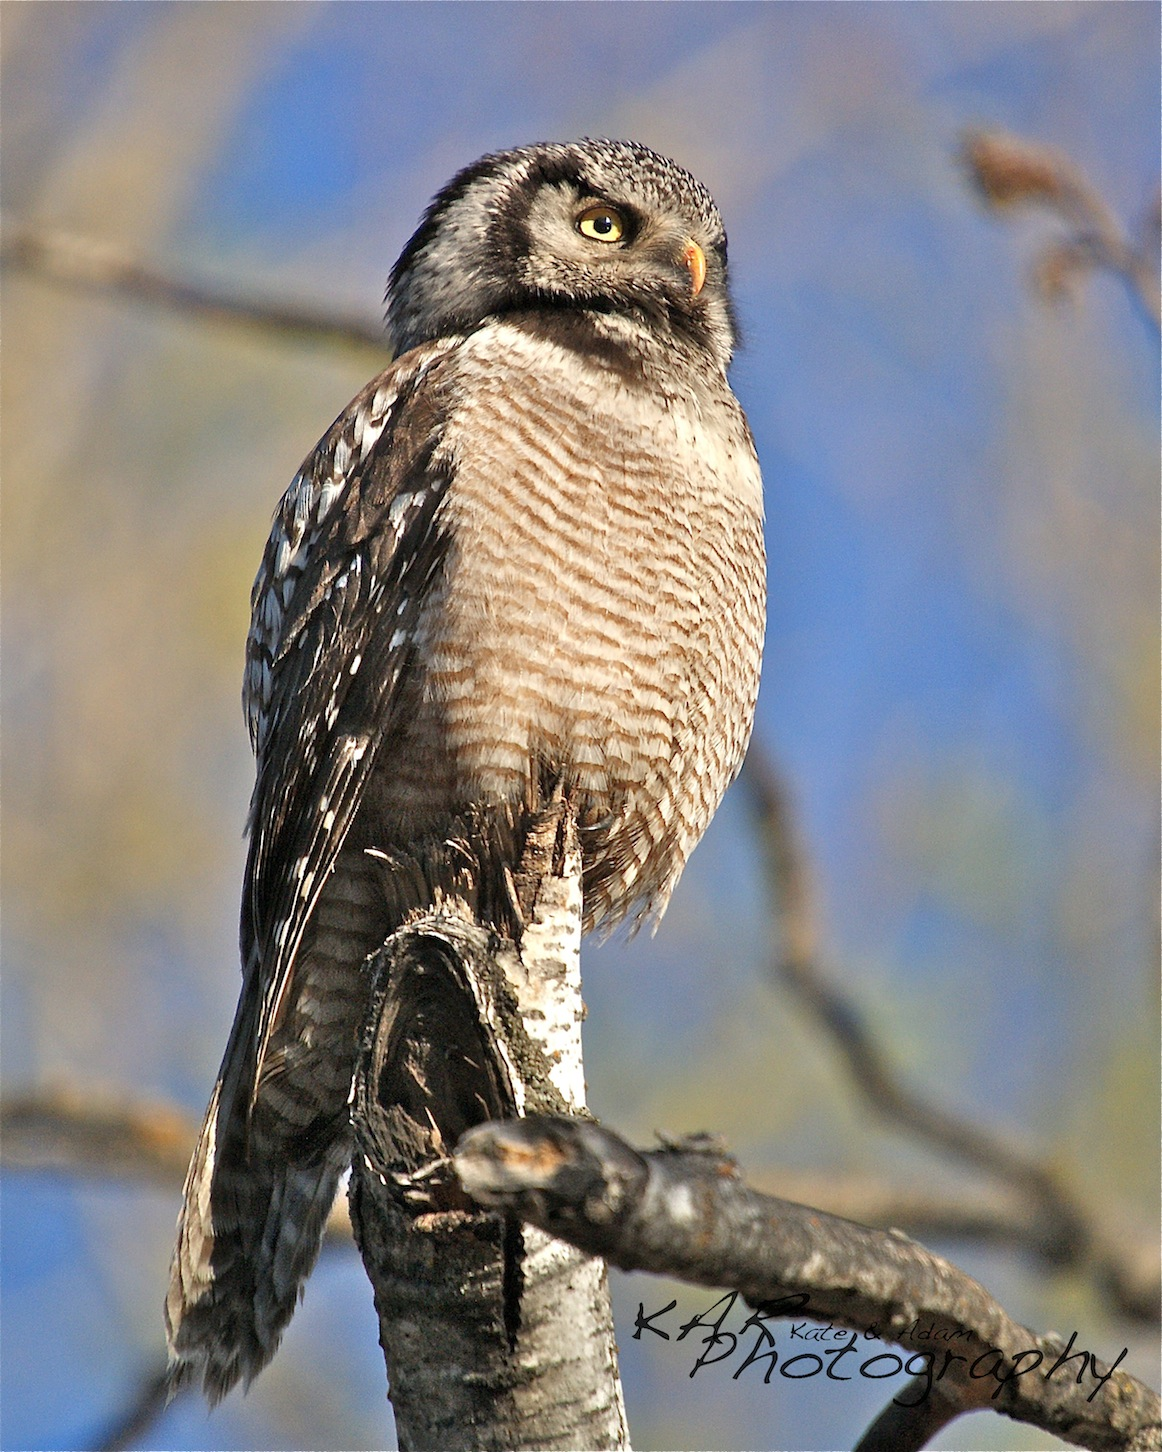 "Kate and Adam: ""The secret of wildlife photography is being able to anticipate animal behavior"". Their first lessons came from owls like this Northern hawk owl in Minnesota. Image: Thanks to ©KAR Photography."